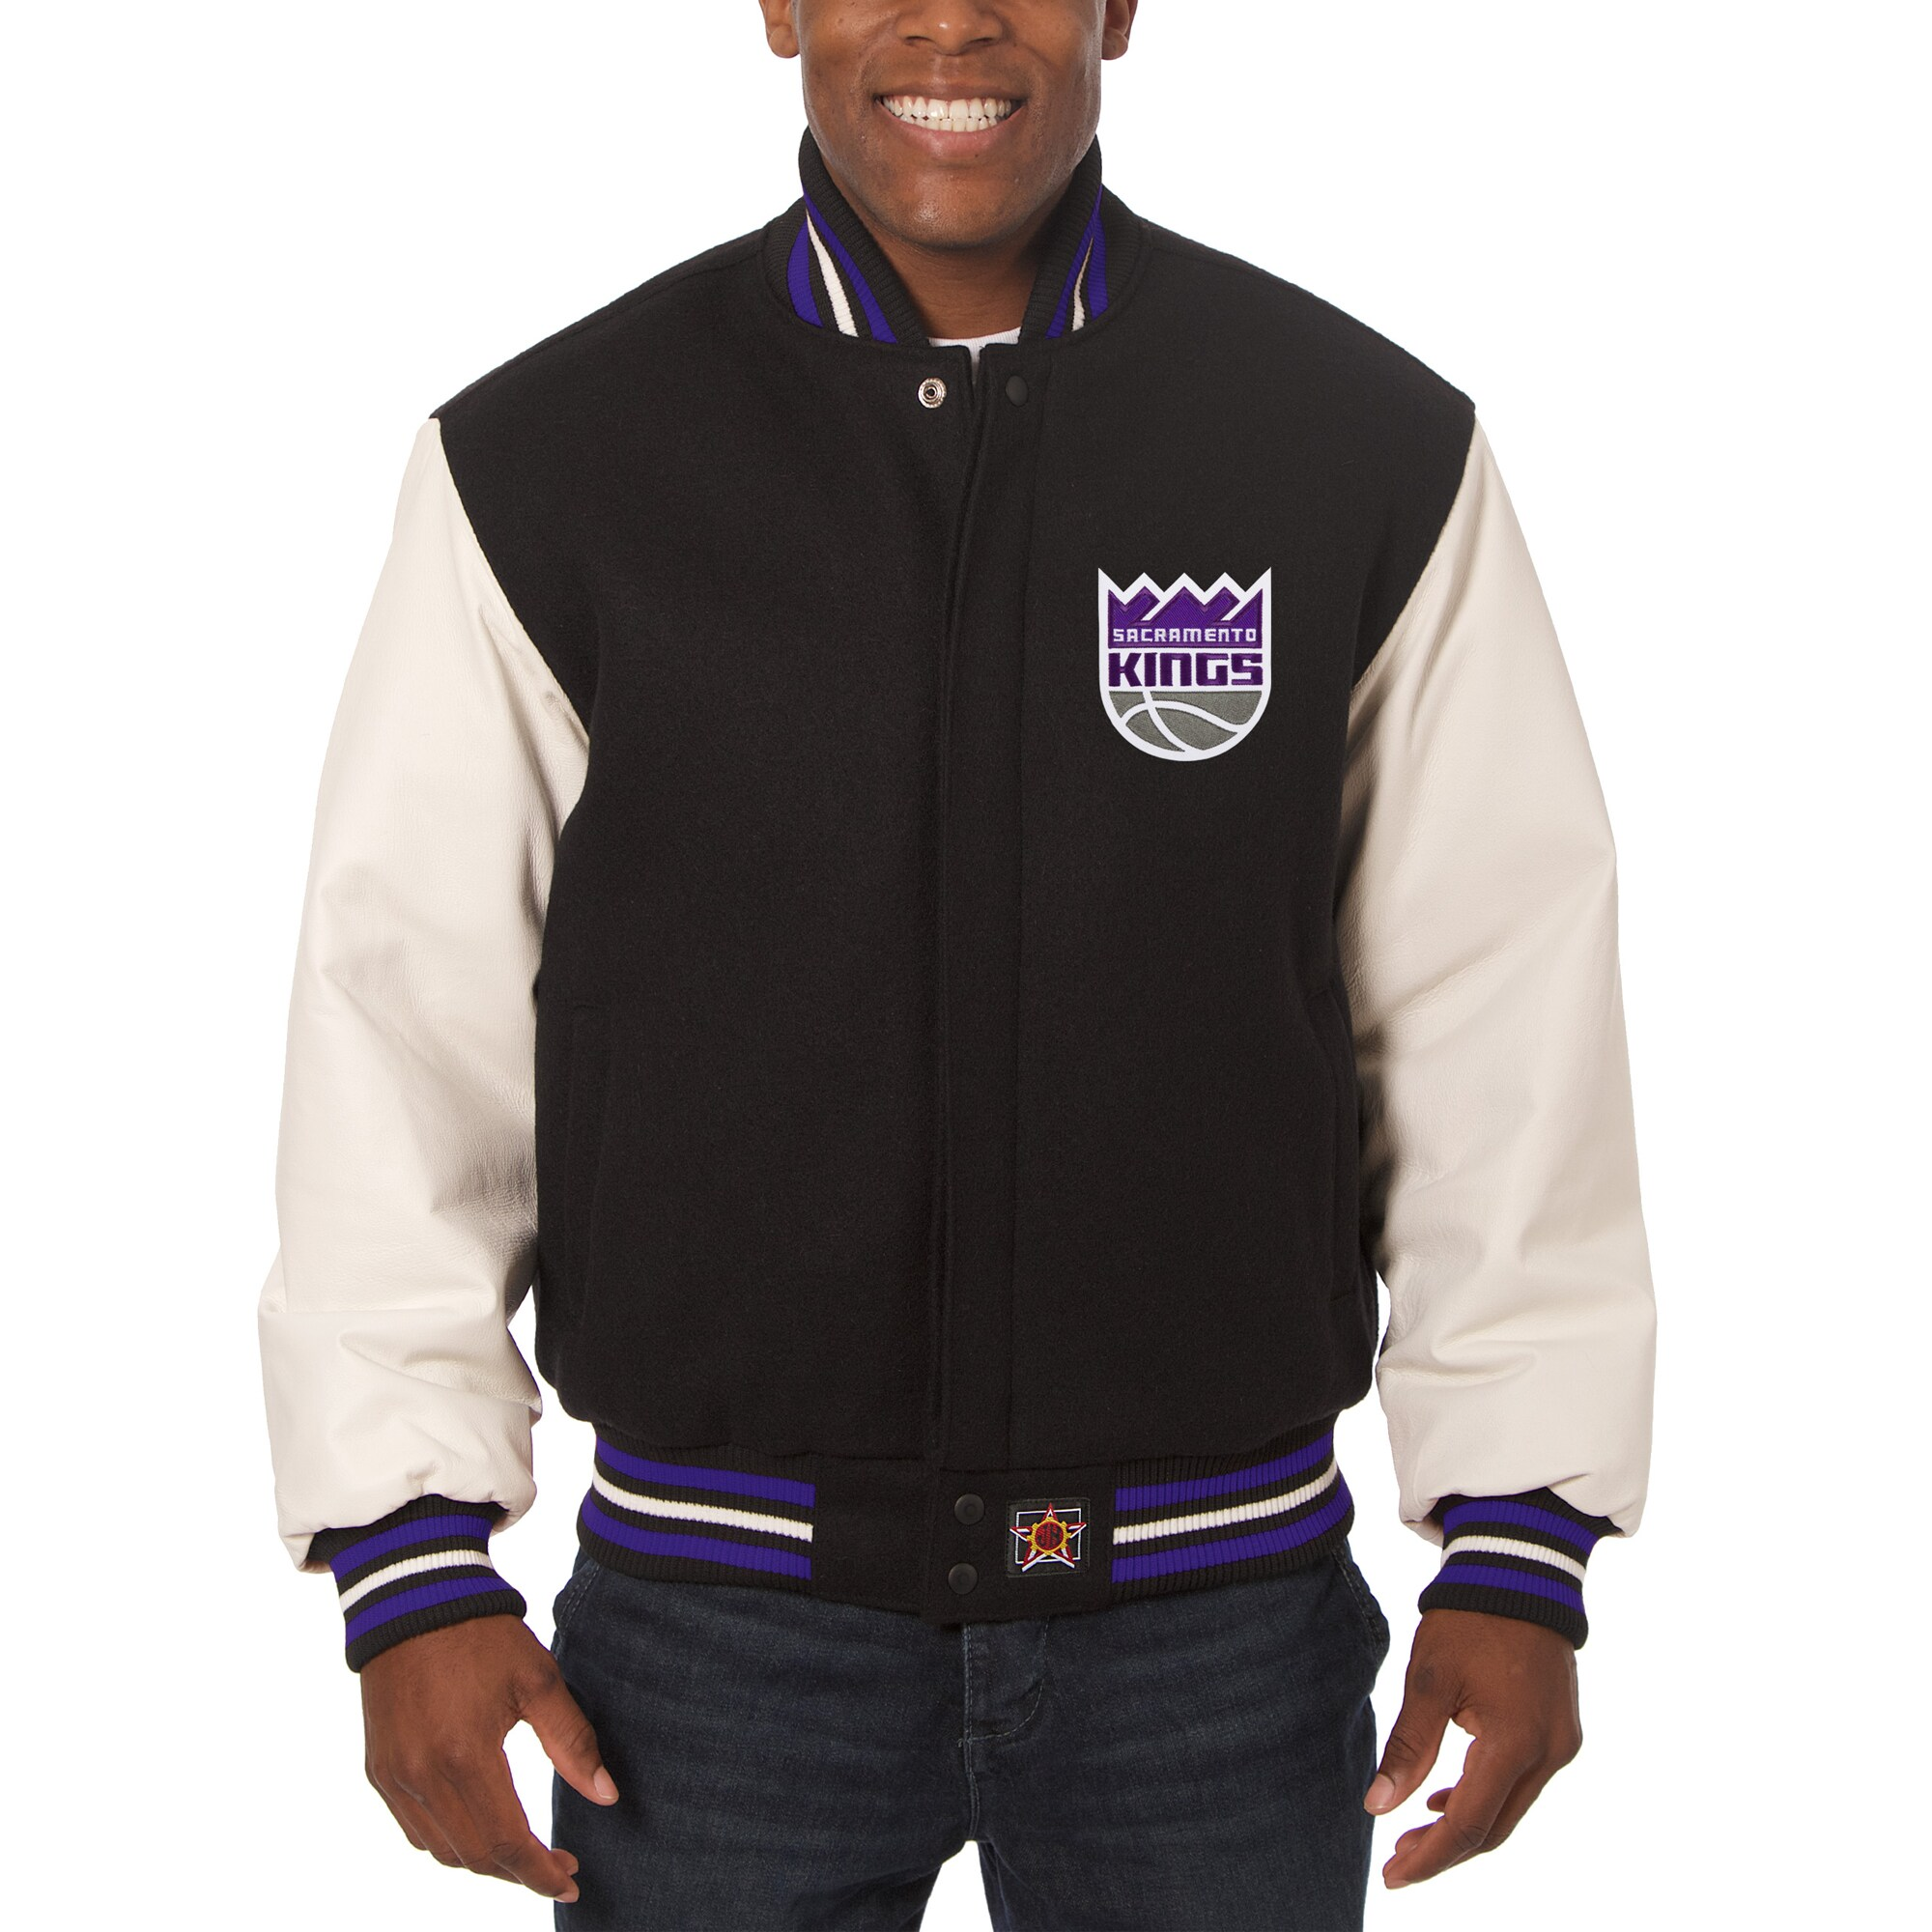 Sacramento Kings JH Design Big & Tall Wool & Leather Jacket - Black/White